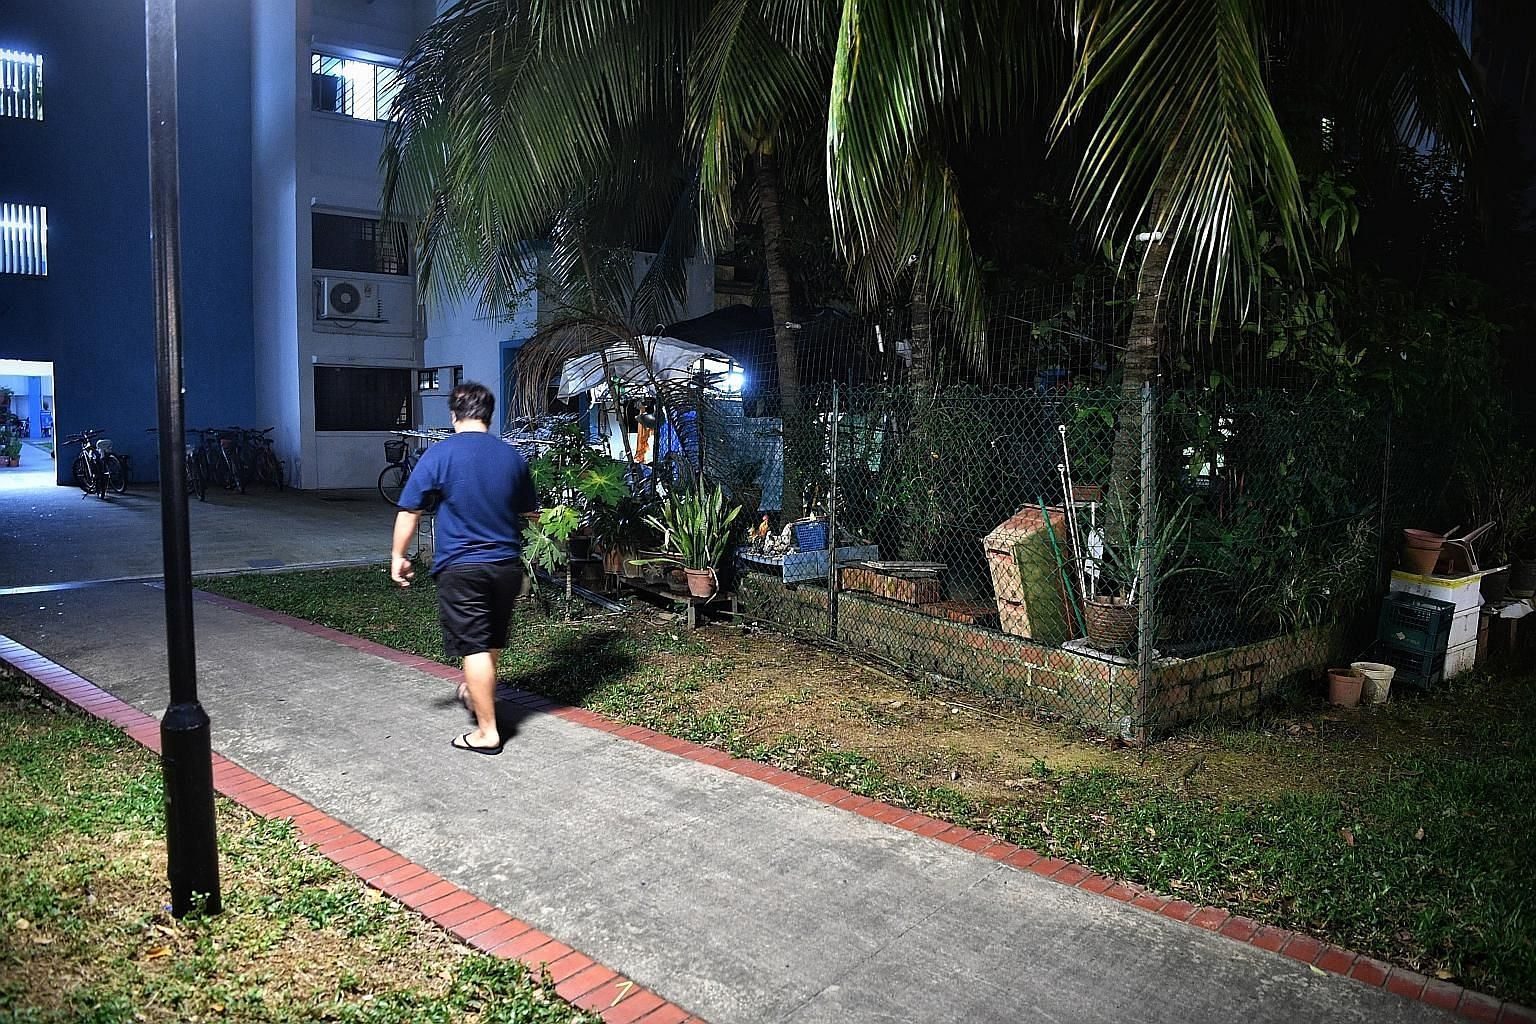 Ms Liang Xueqiu was found injured and lying motionless at Block 211 Boon Lay Place on Thursday, and was pronounced dead in hospital. Her husband, Chinese national Cui Huan, is accused of killing her at a footpath at the block. ST PHOTO: ARIFFIN JAMAR